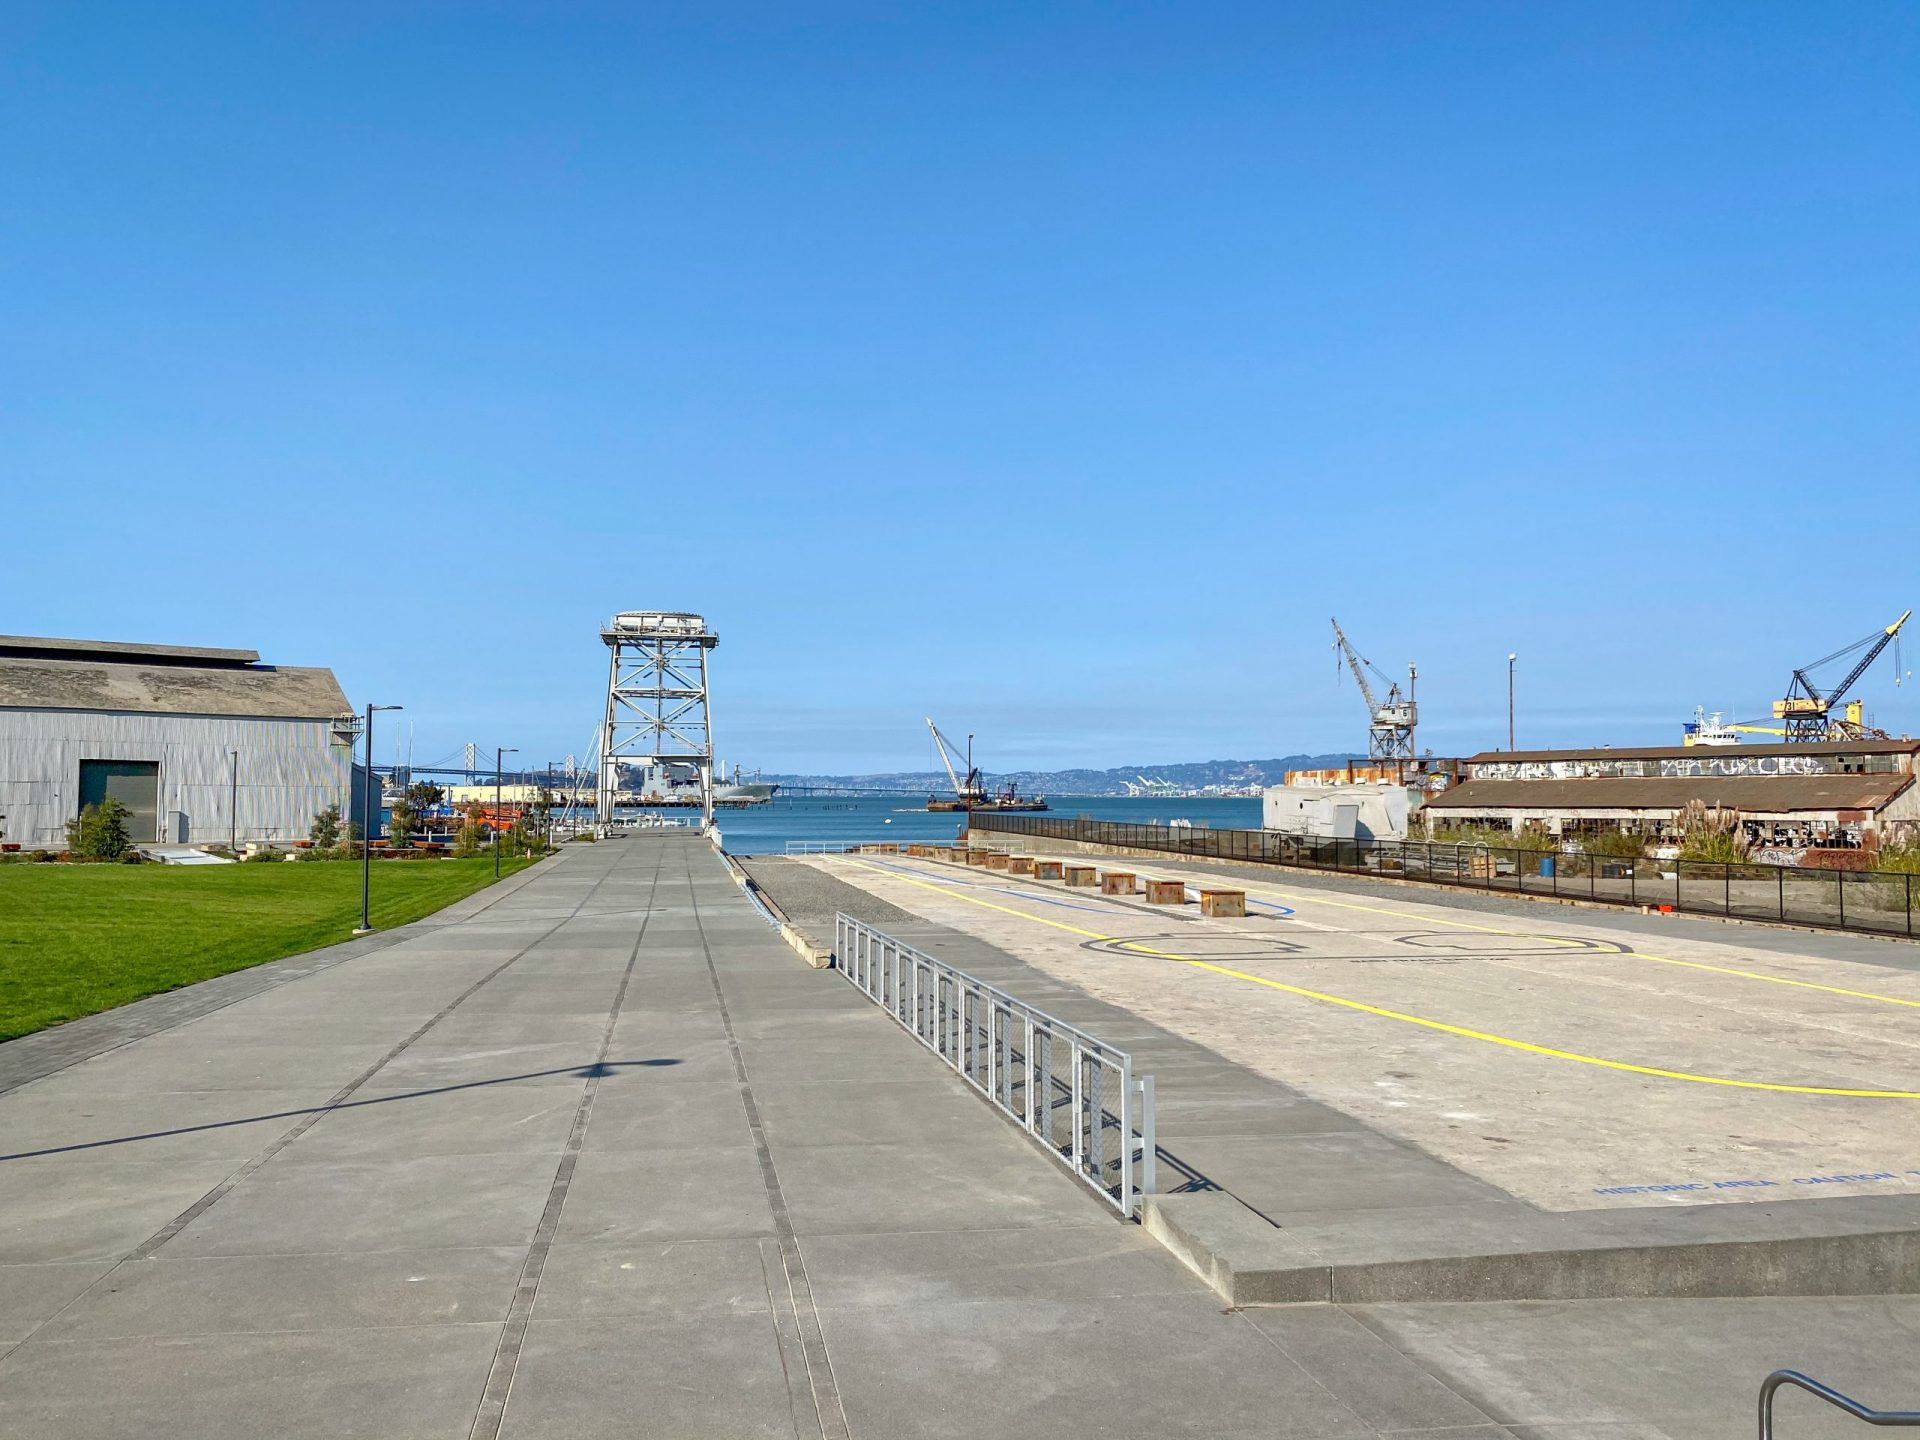 paved area with shipping cranes